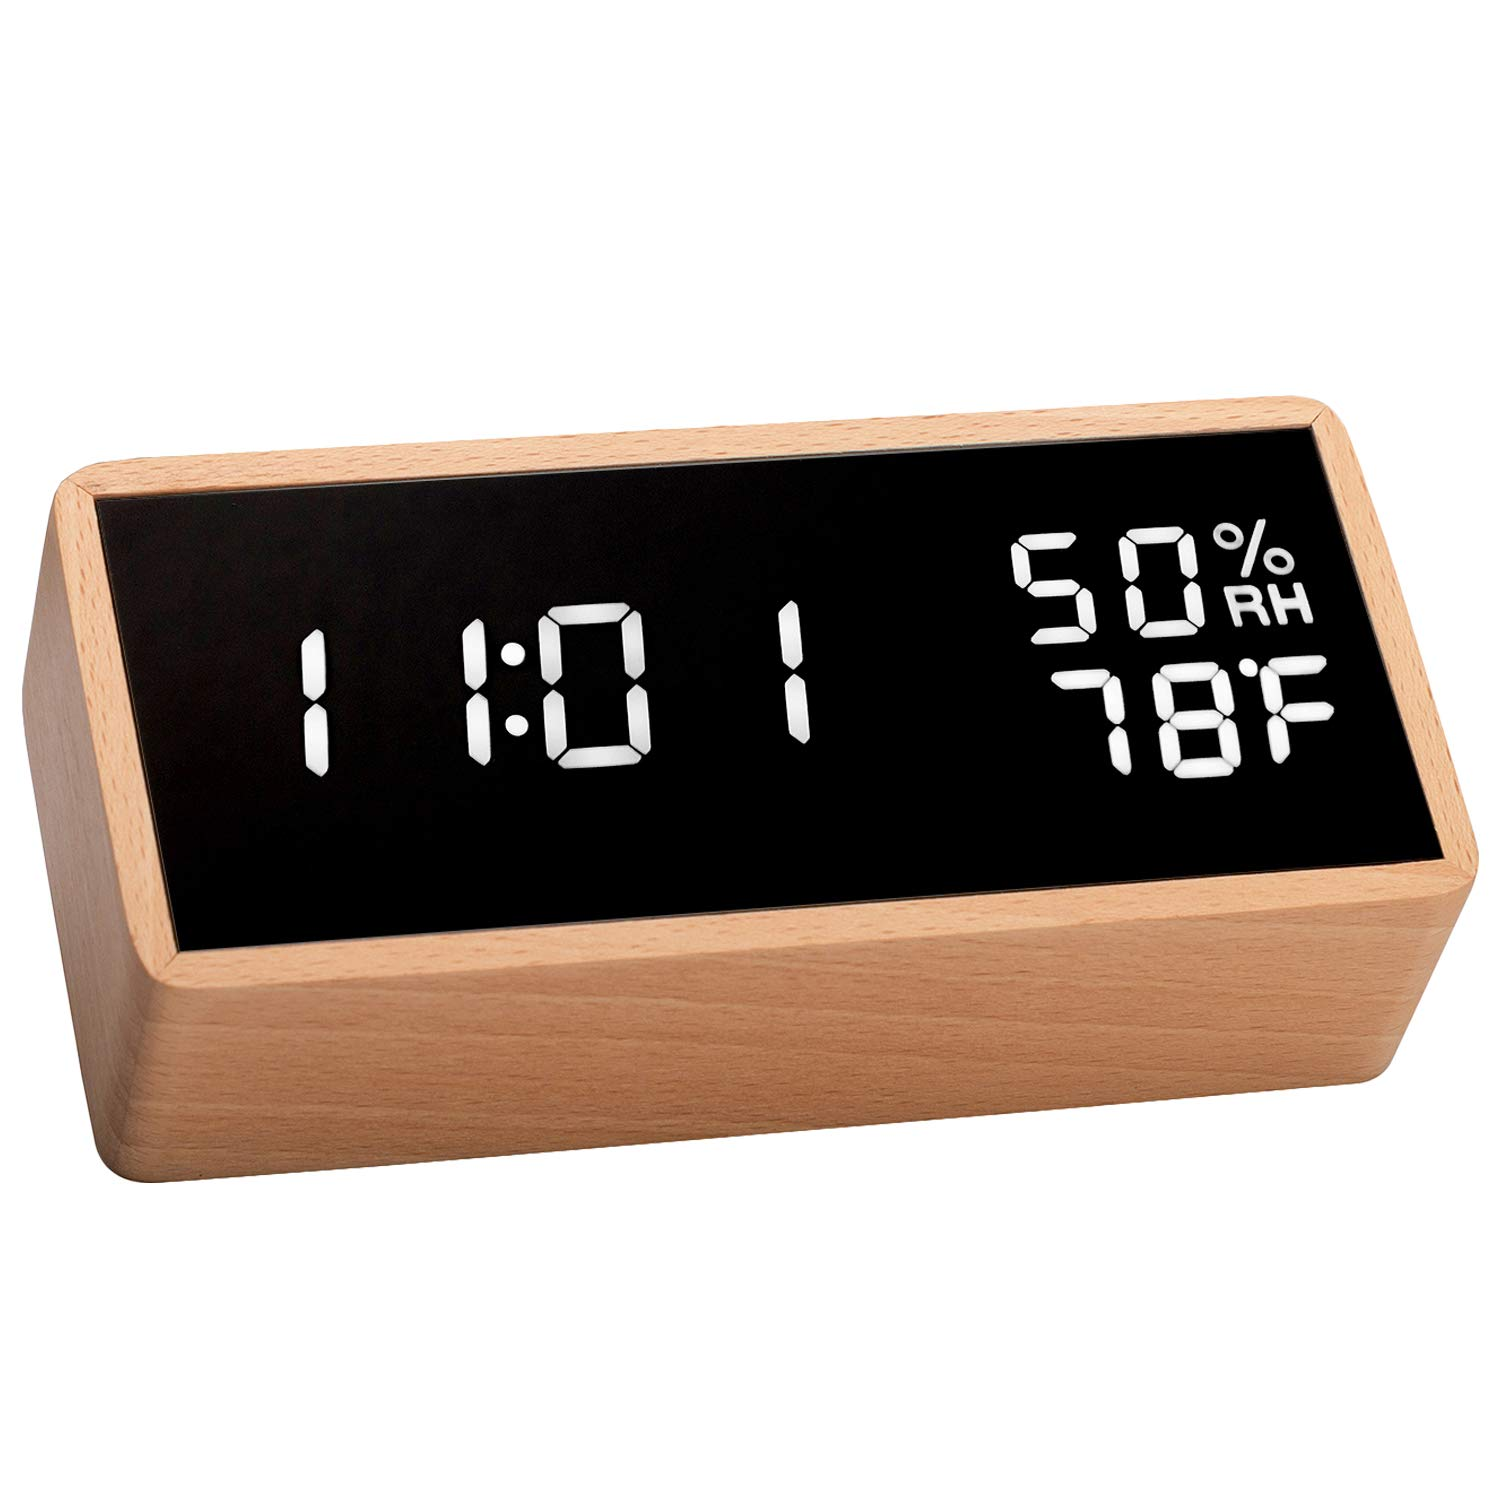 meross Digital Alarm Clock for Bedrooms, Real Wood, LED Display Desk Clock, Time Temperature Humidity, 3 Sets of Alarms, Adjustable Brightness, Sound ...